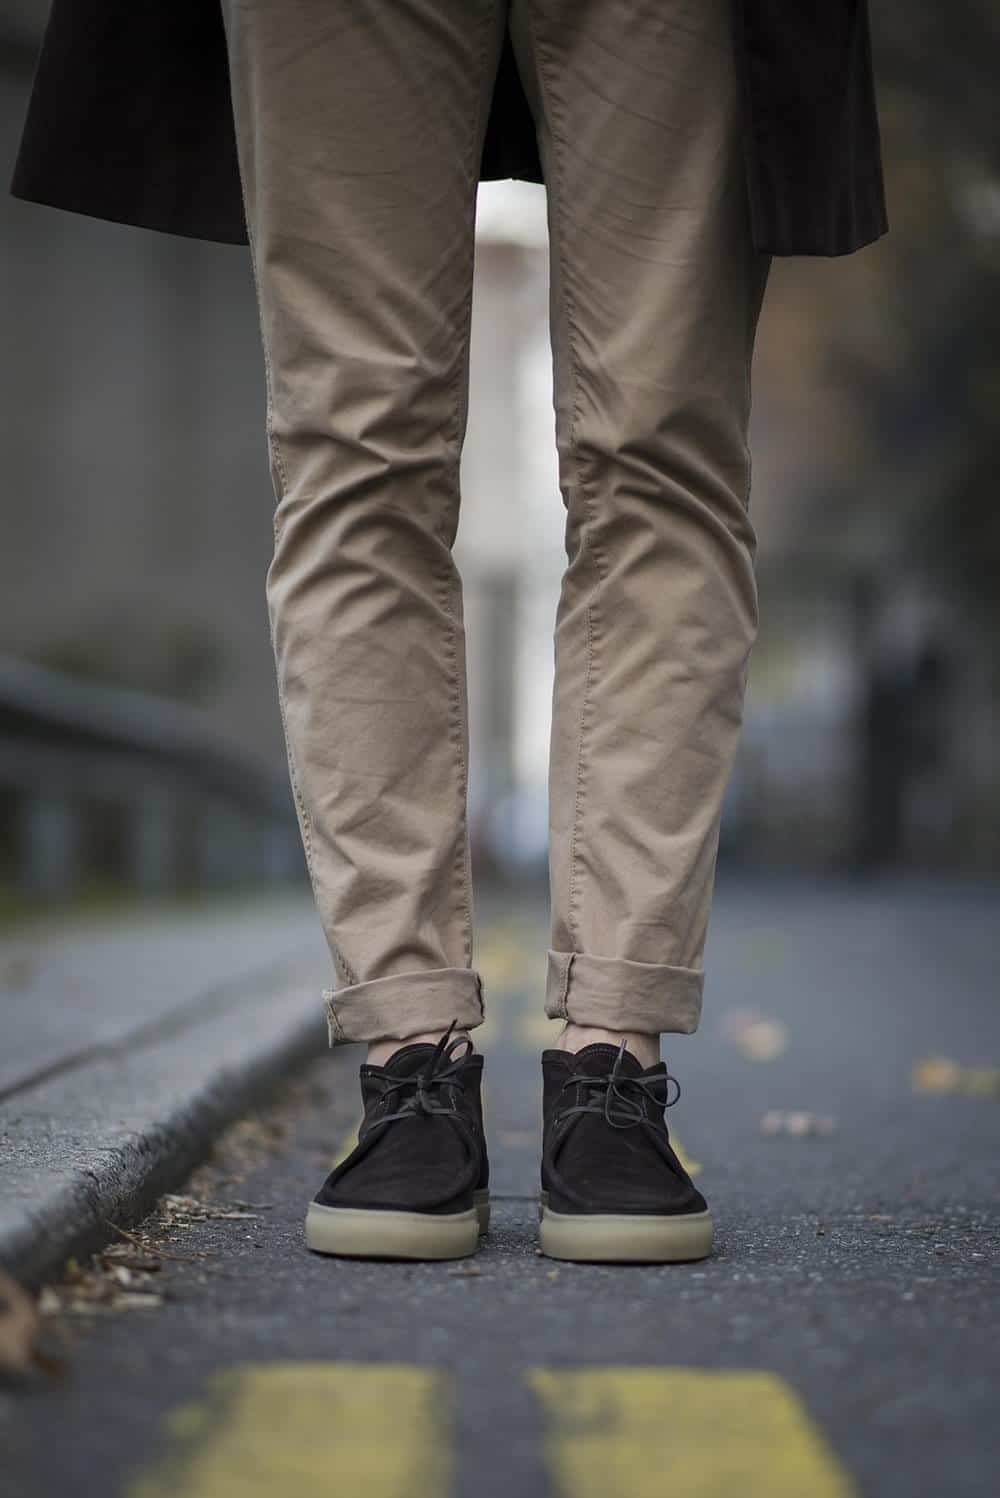 men-thanksgiving-shoes 2018 Men's Thanksgiving Outfits-30 Ways to Dress on Thanksgiving